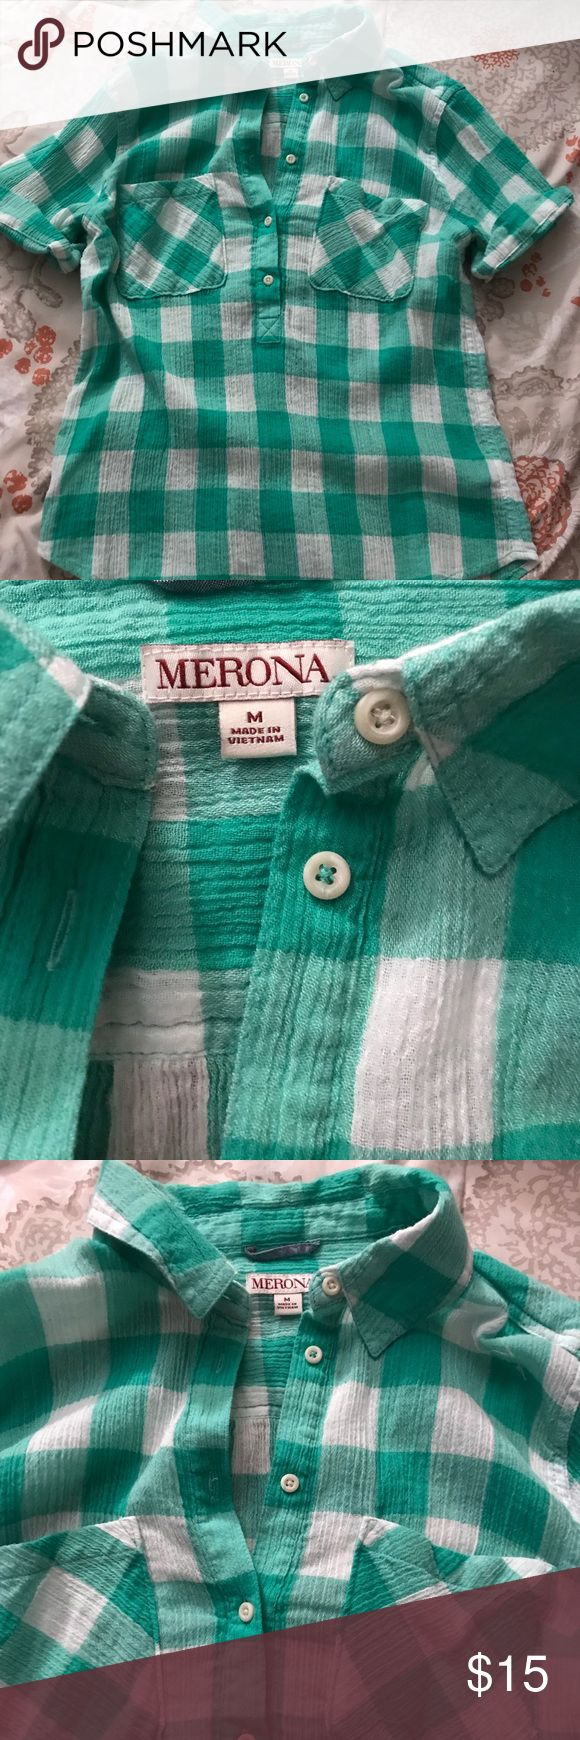 Merona Plaid Turquoise Shirt Good condition. Worn & washed once. Fits true to size. No rips, tears or stains. Smoke & pet free home. Merona Tops Button Down Shirts